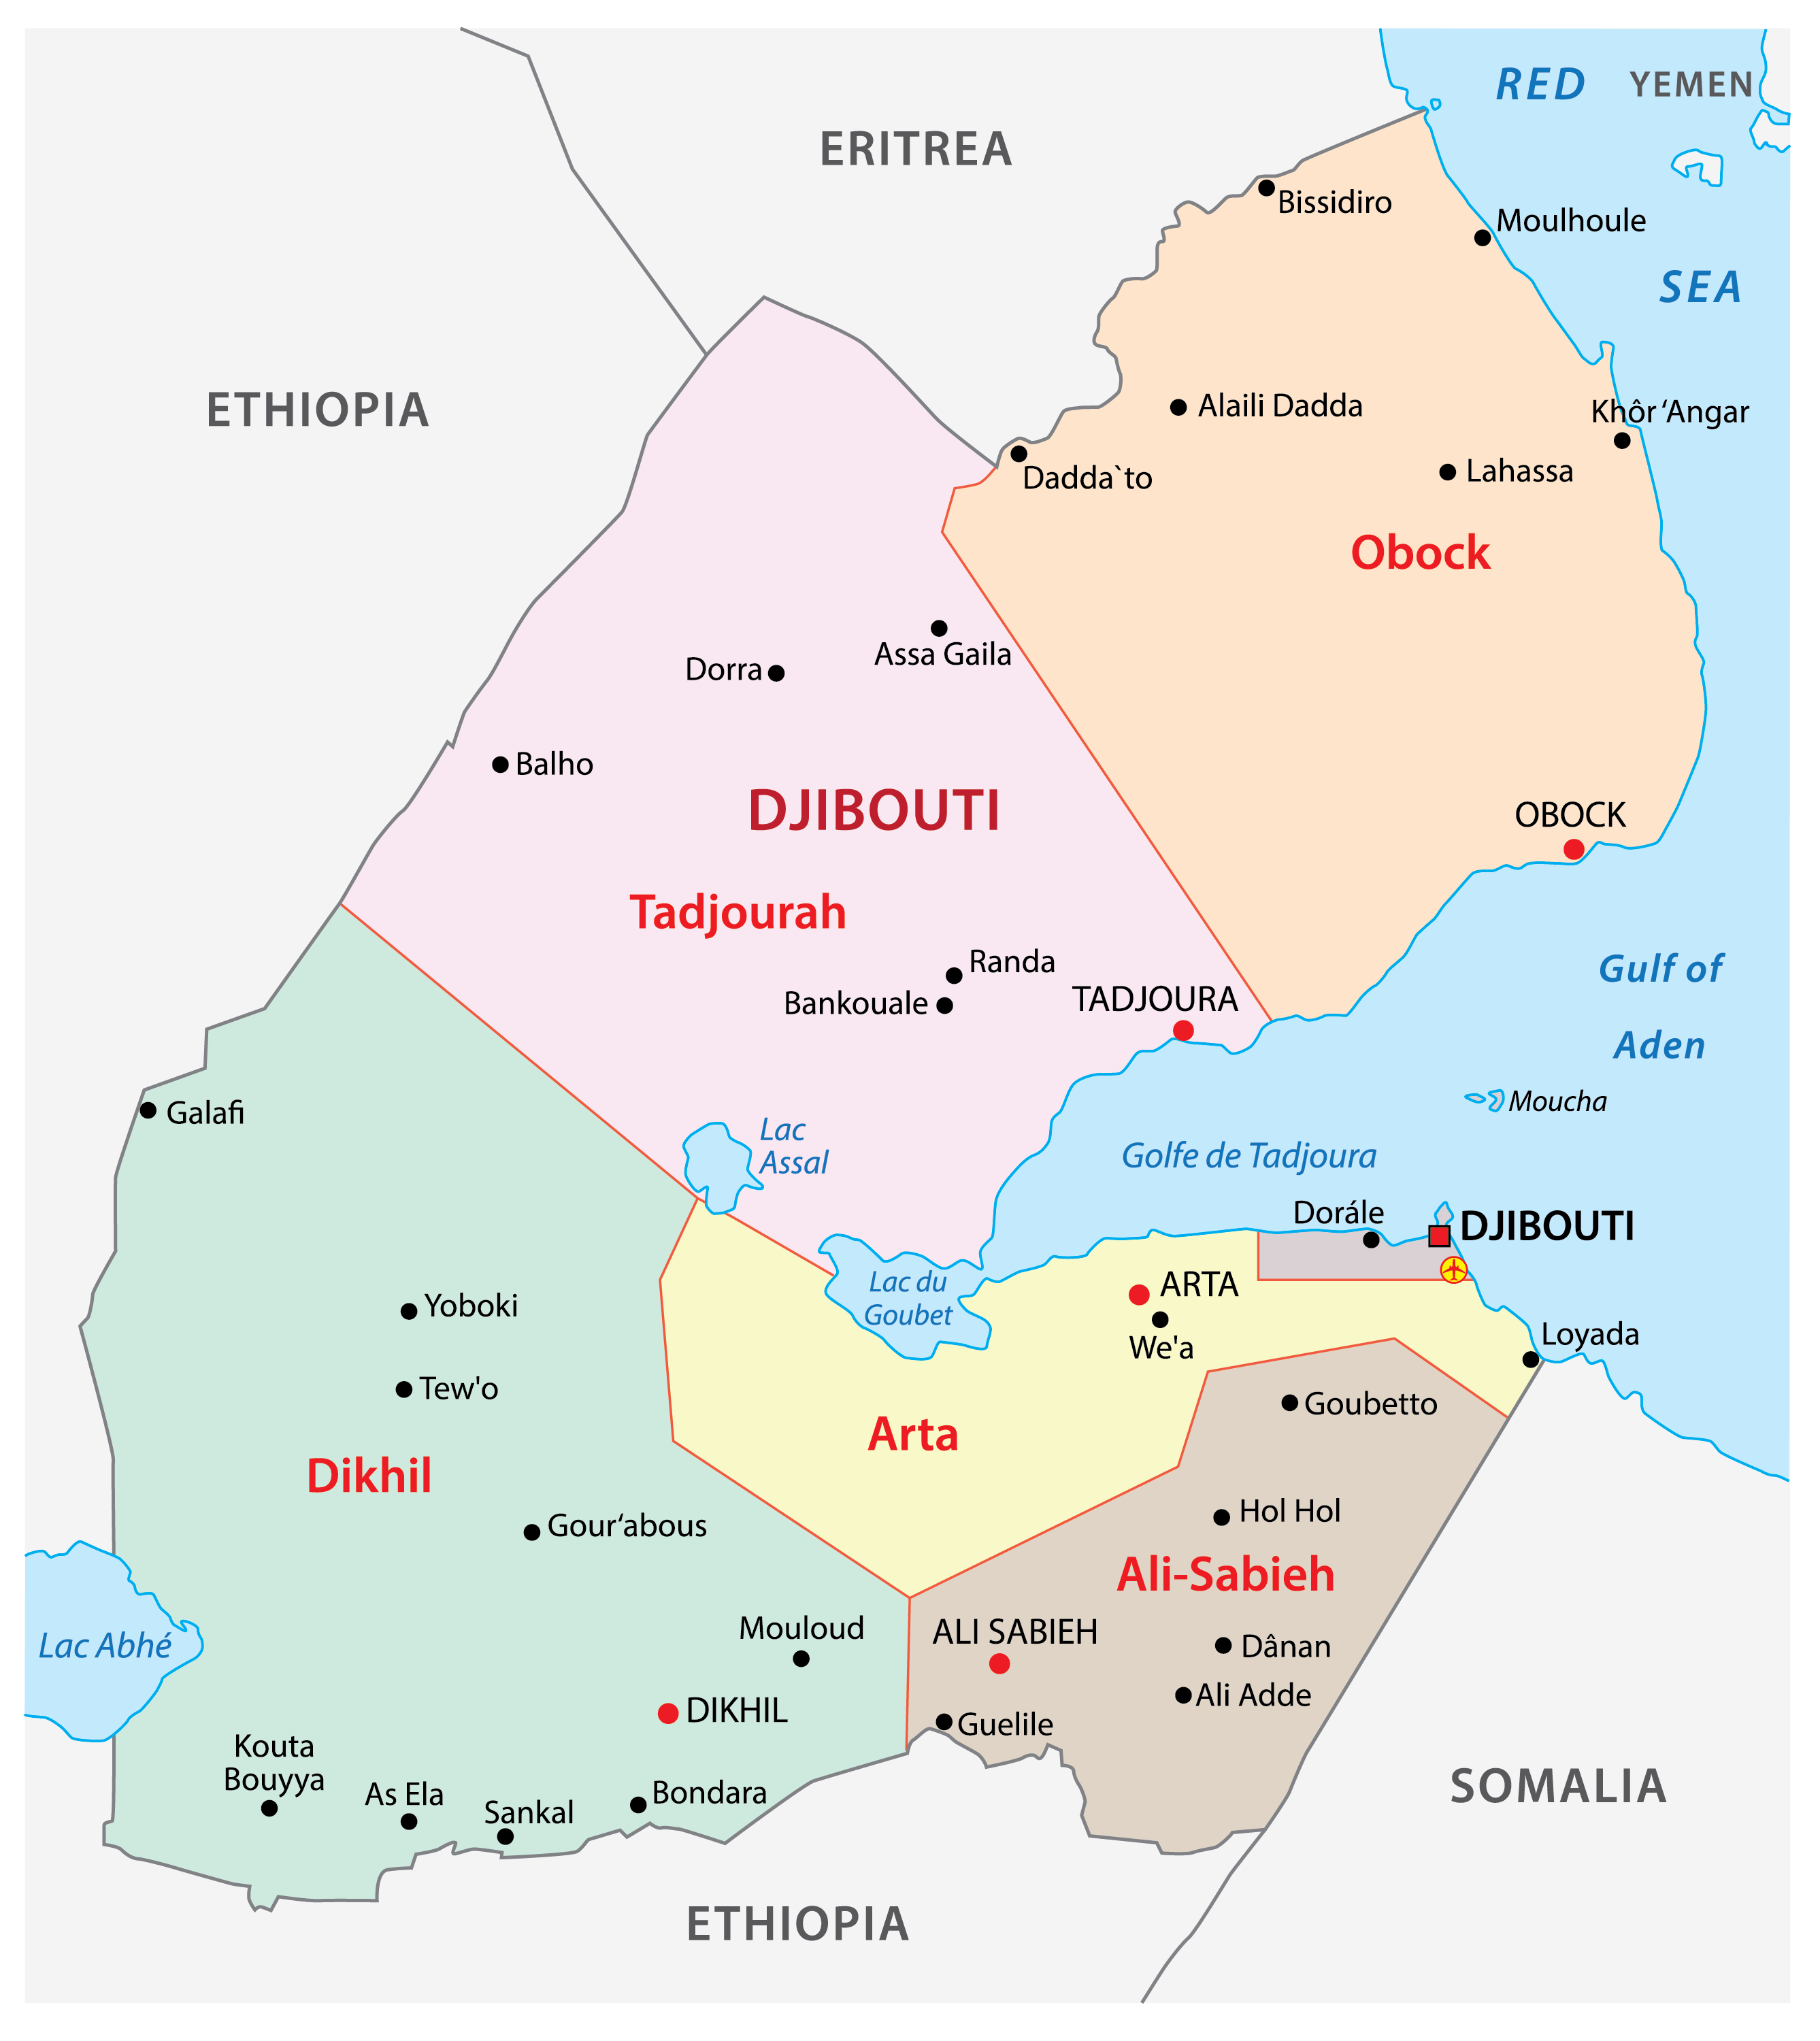 Political Map of Djibouti displaying 6 regions, their capital cities, and the national capital of Djibouti City.